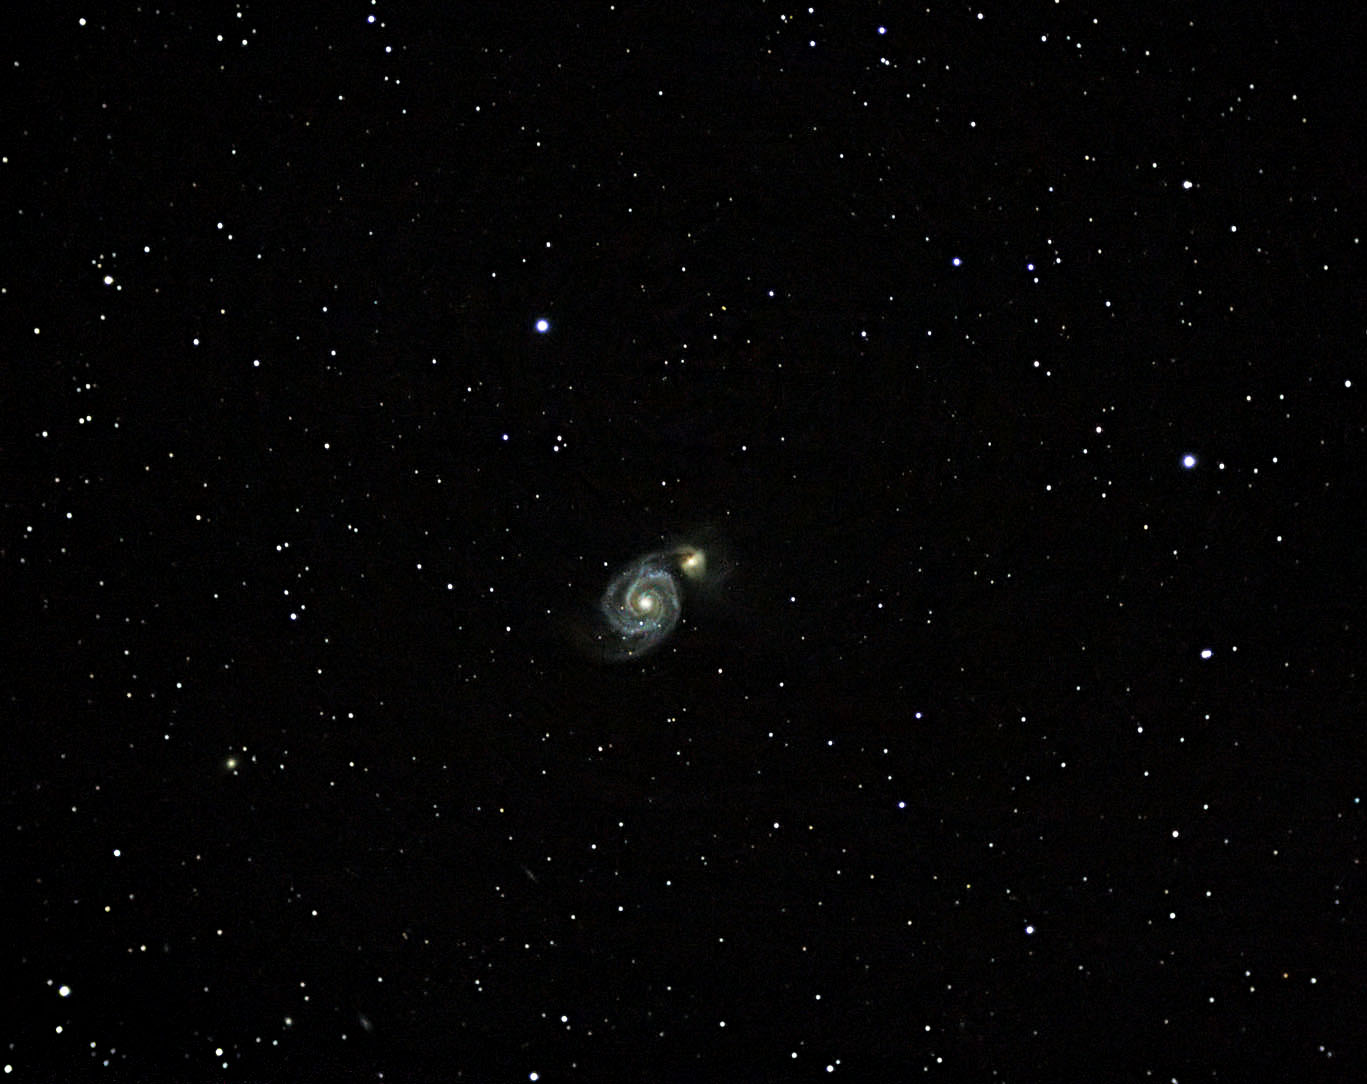 M51 Spiral Galaxy   19 Frames, 10m08s, Median combine DSS, Cropped, small PS5